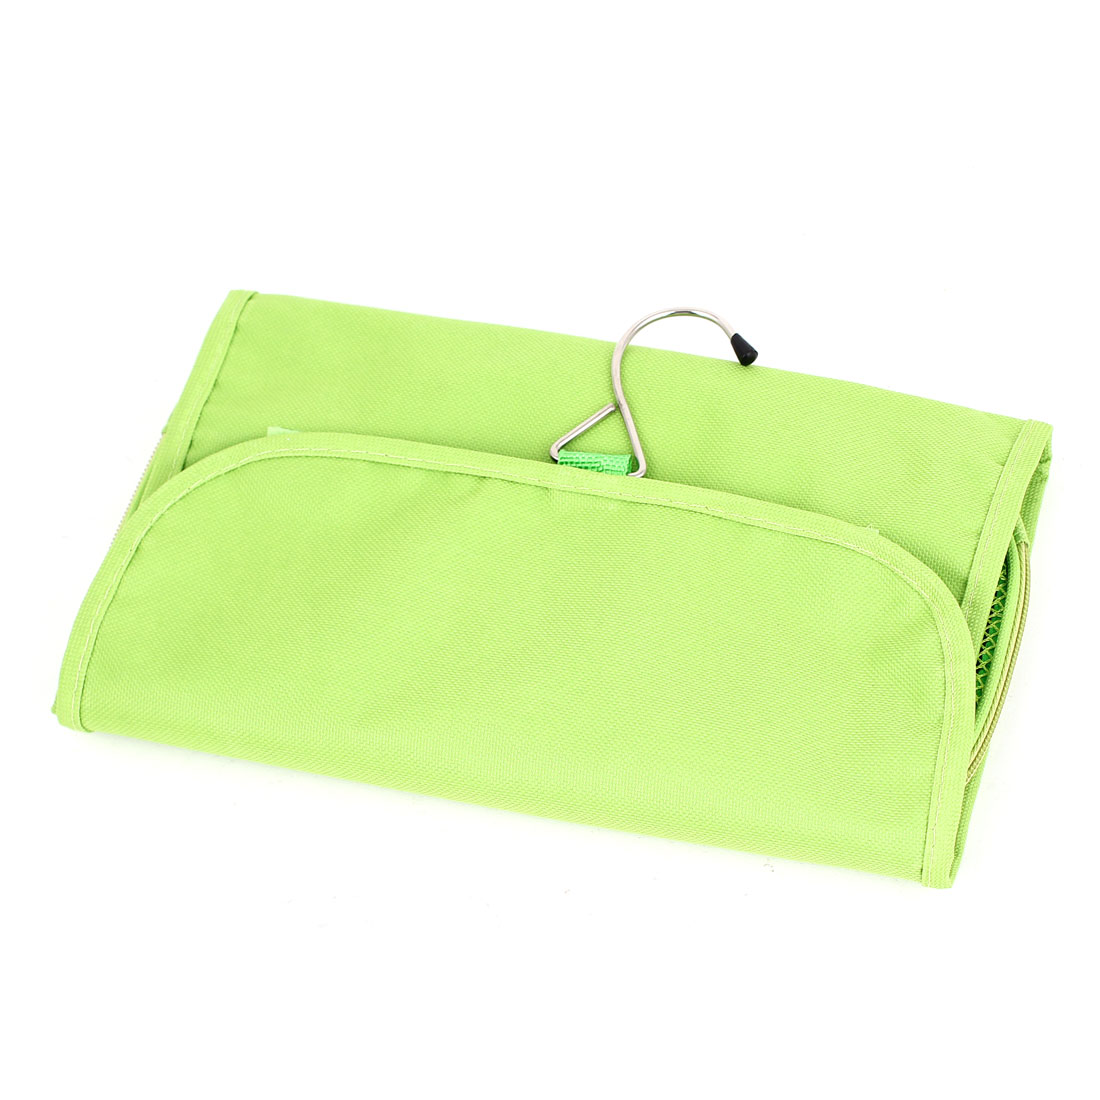 Travel Toiletry Toiletries Cosmetic Mirror Hanging Foldable Wash Bag Green